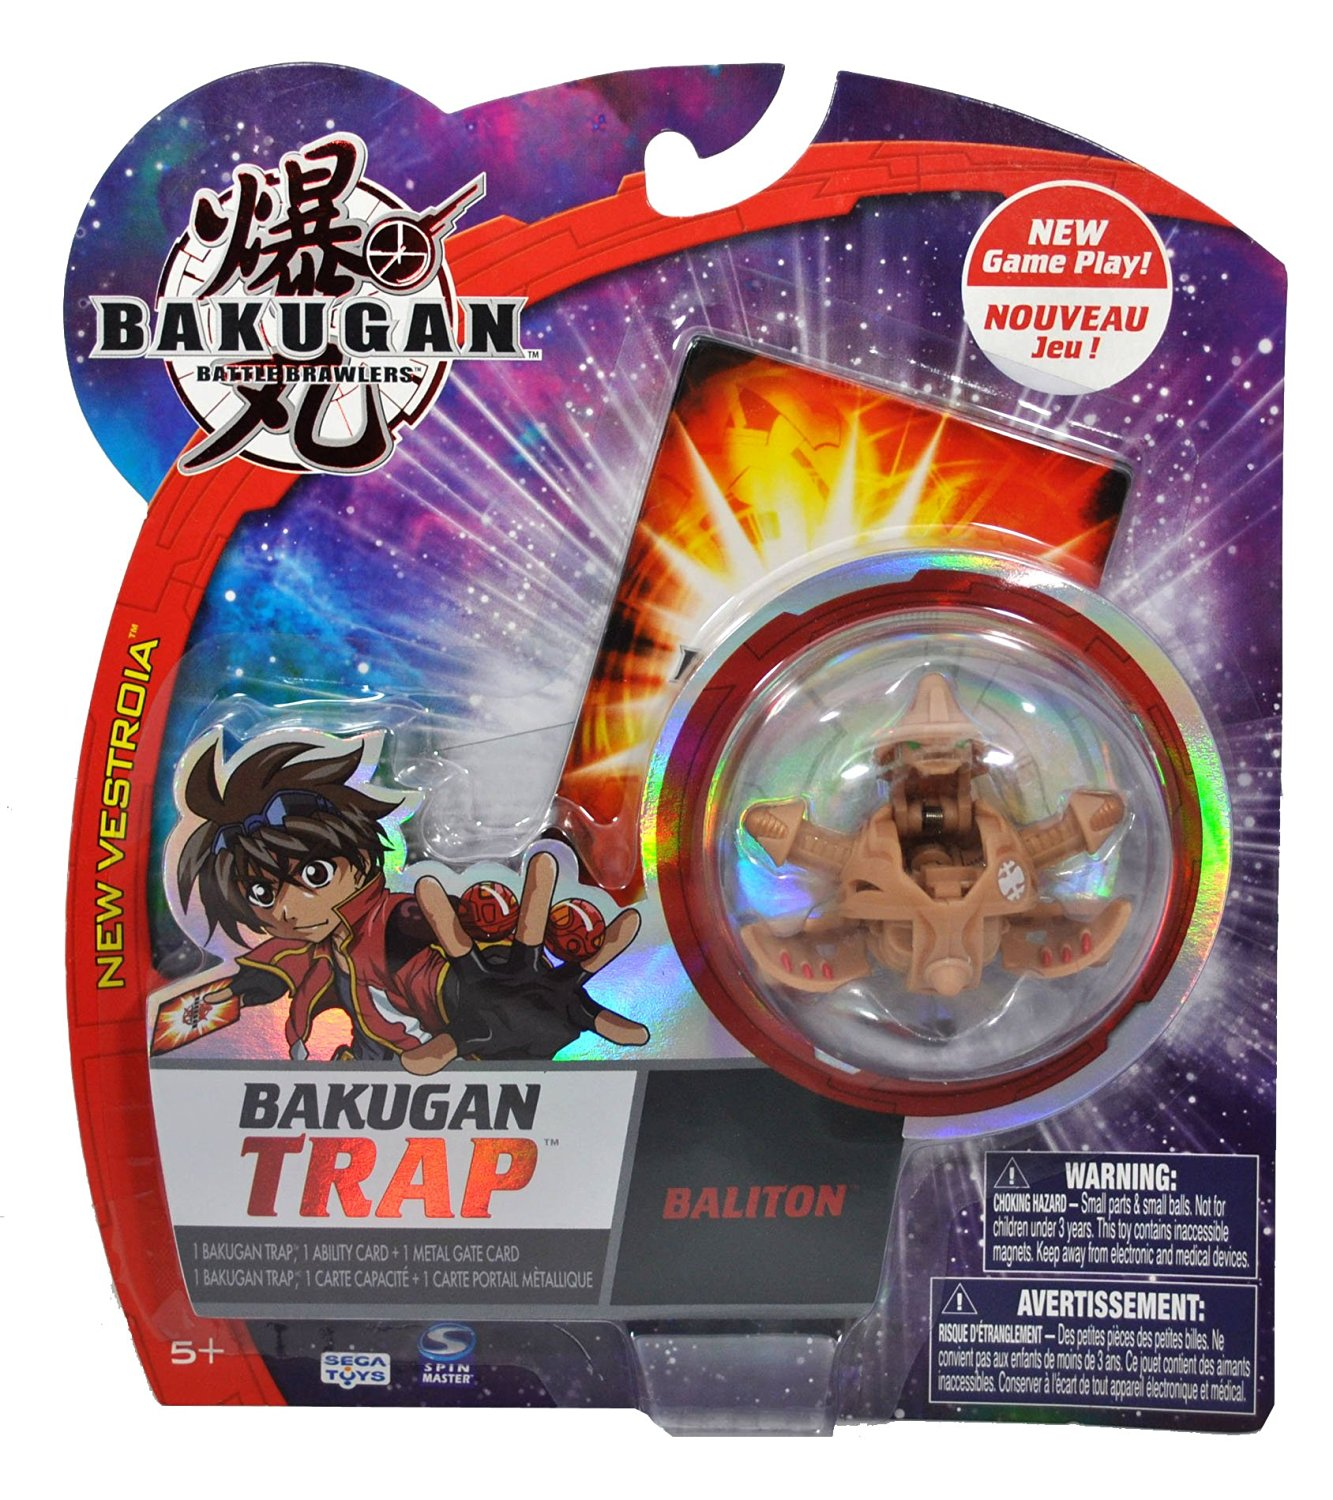 Bakugan Battle Brawlers New Vestroia Bakugan Trap Series - Subterra Brown BALITON with 1 Ability Card and 1 Metal Gift Card